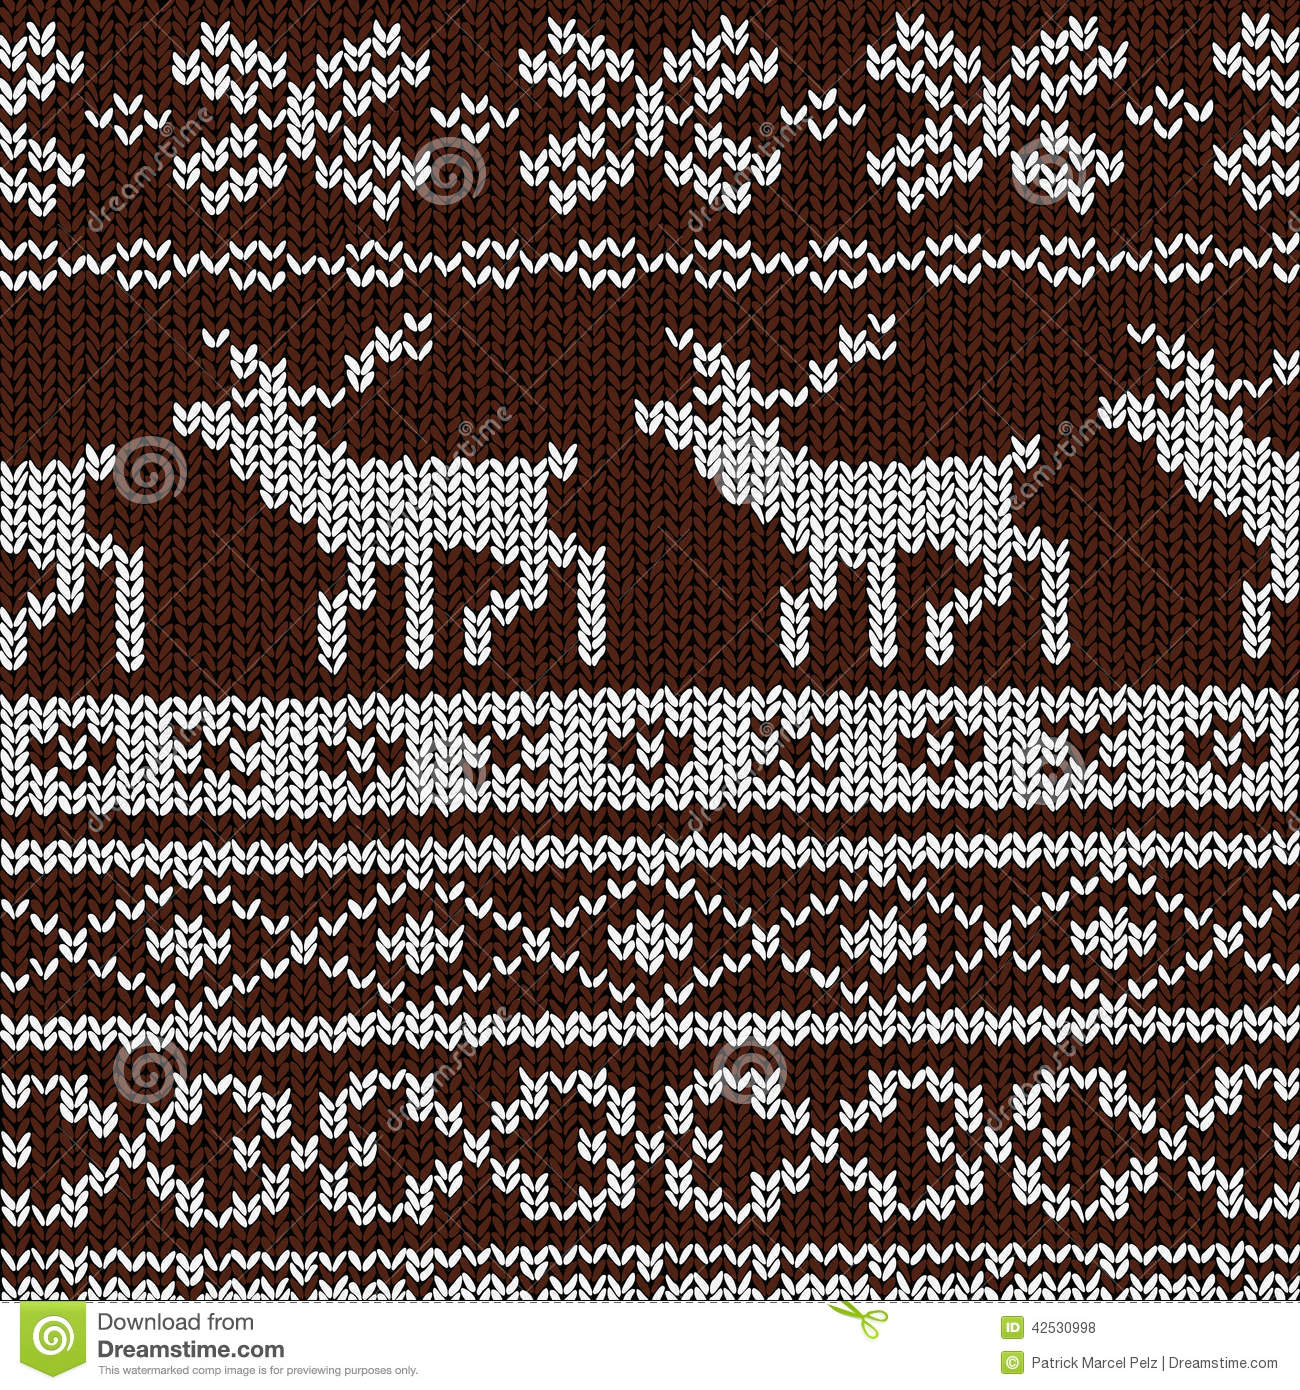 Scandinavian Knitting Patterns : Christmas Background - Norwegian Knitting Patterns Stock Vector - Image: 4253...